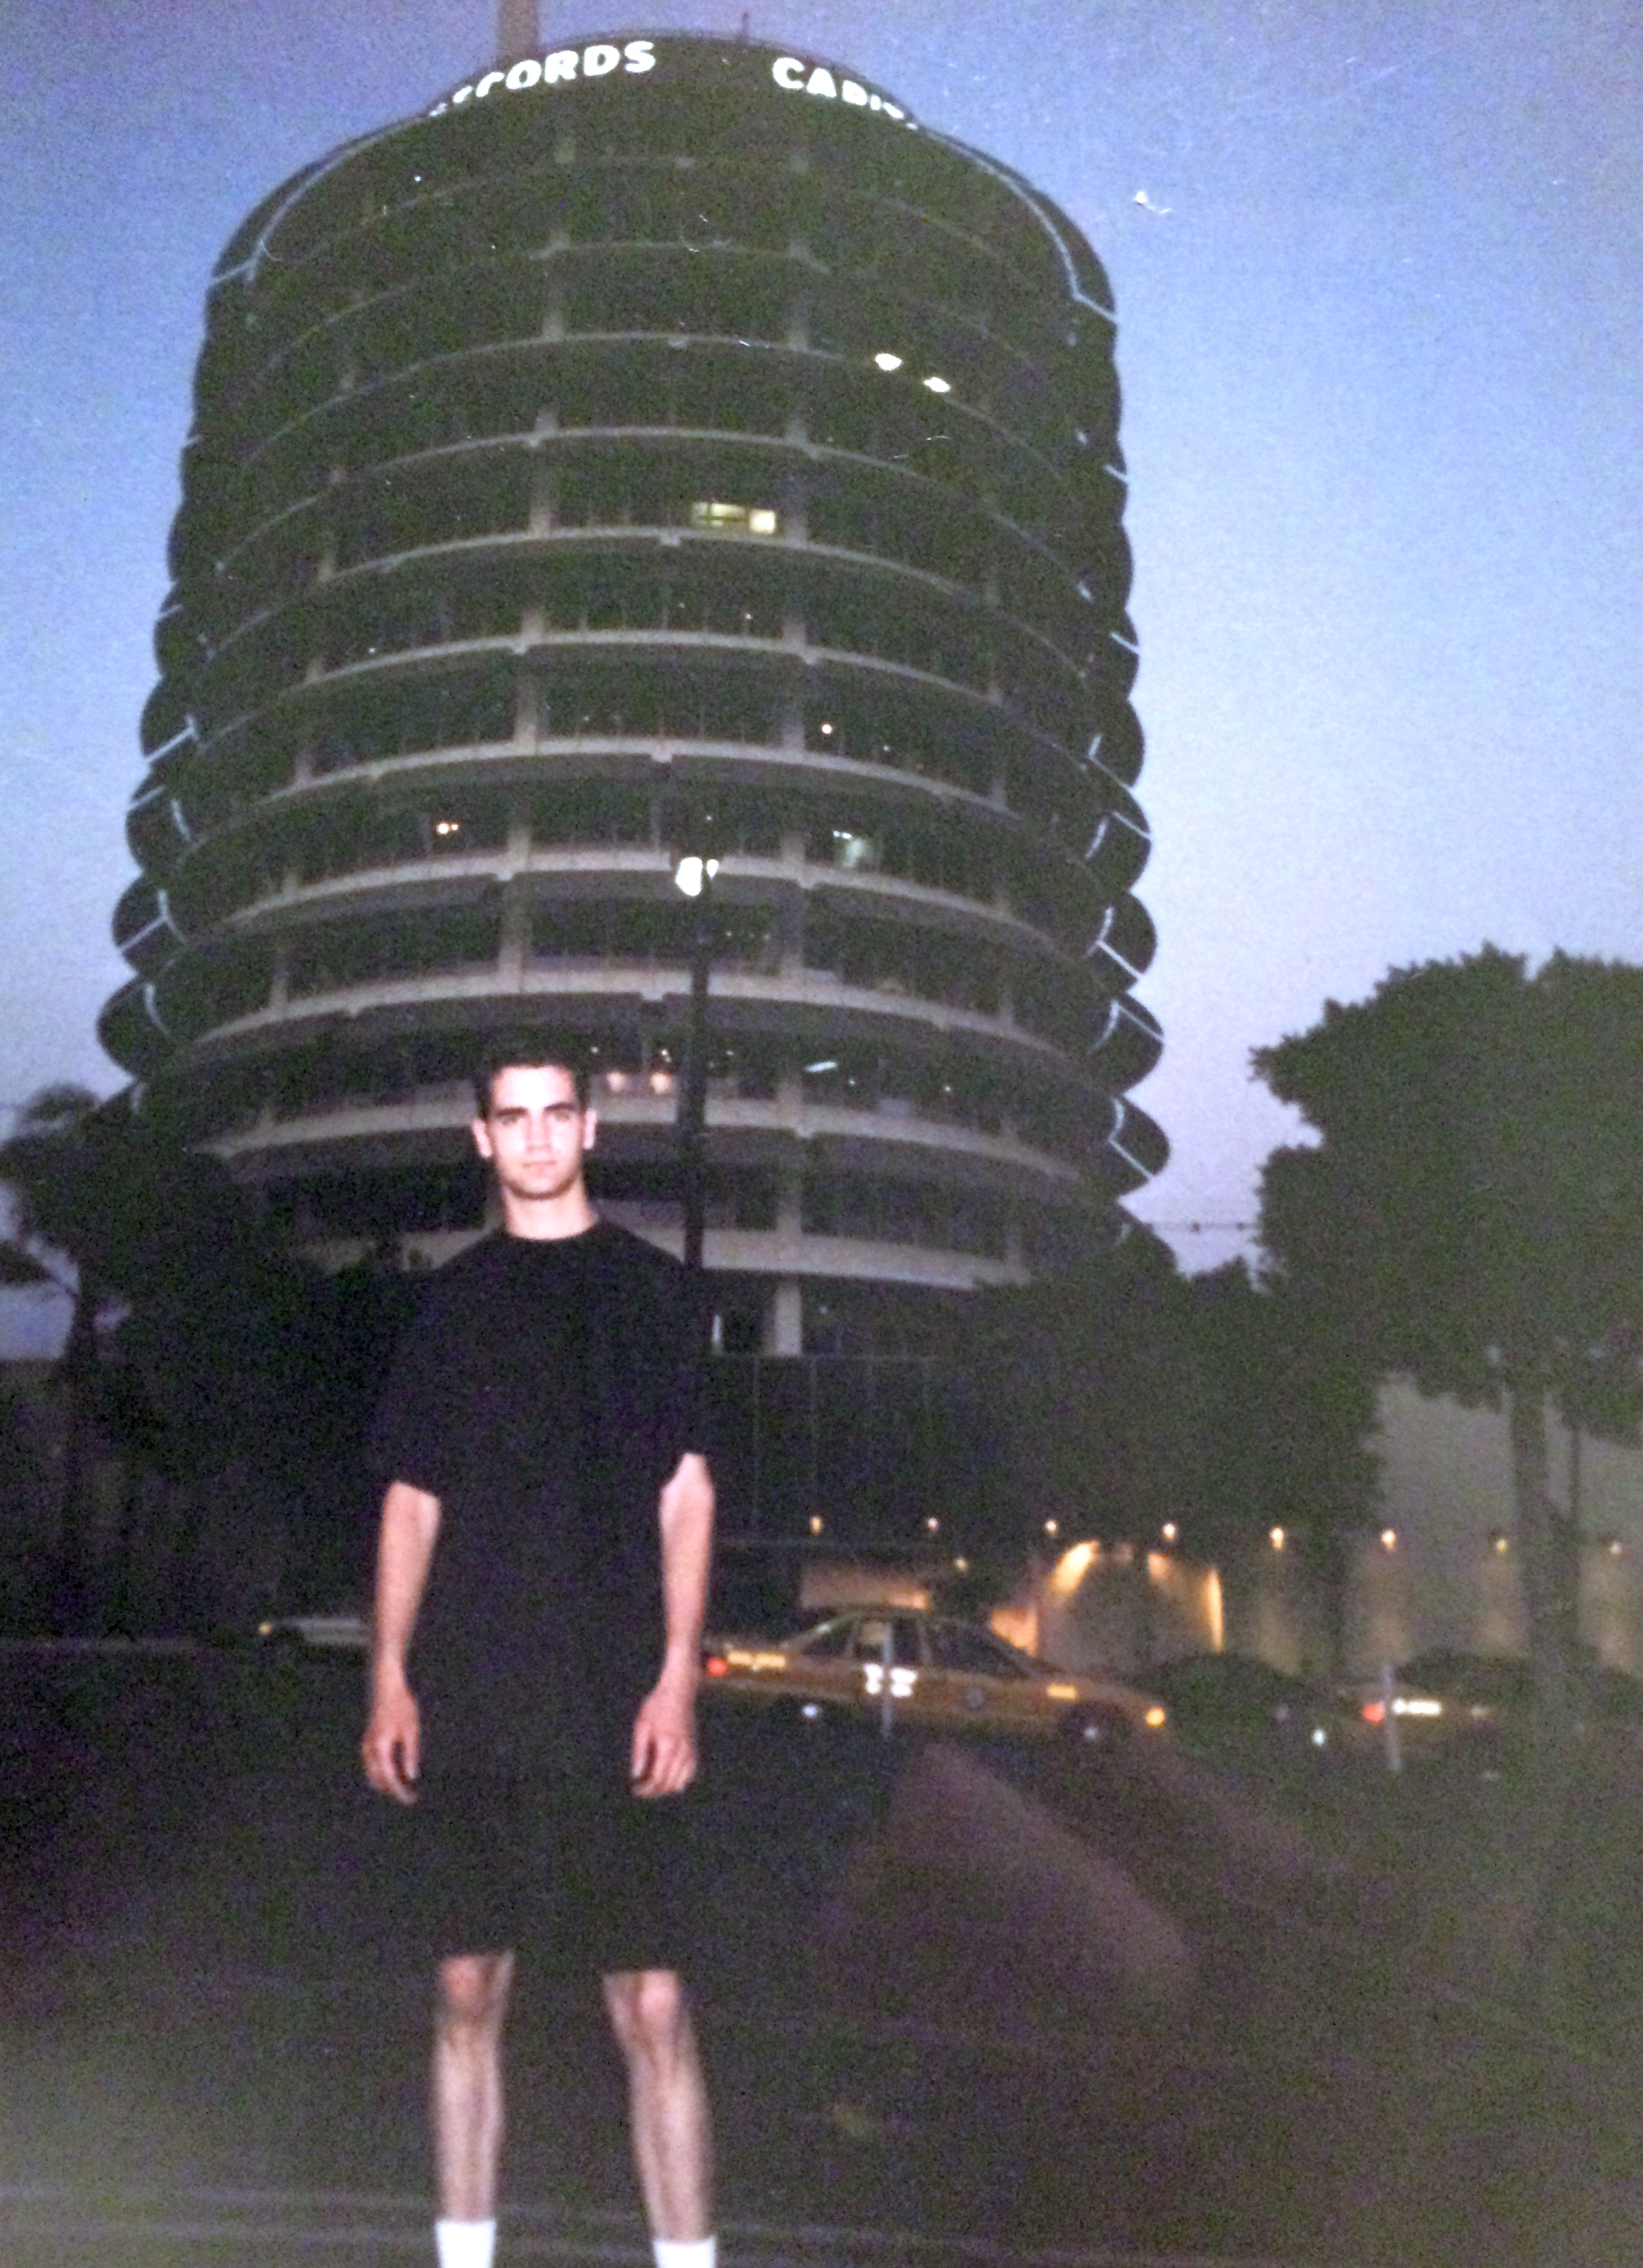 Me; in front of Capitol Records